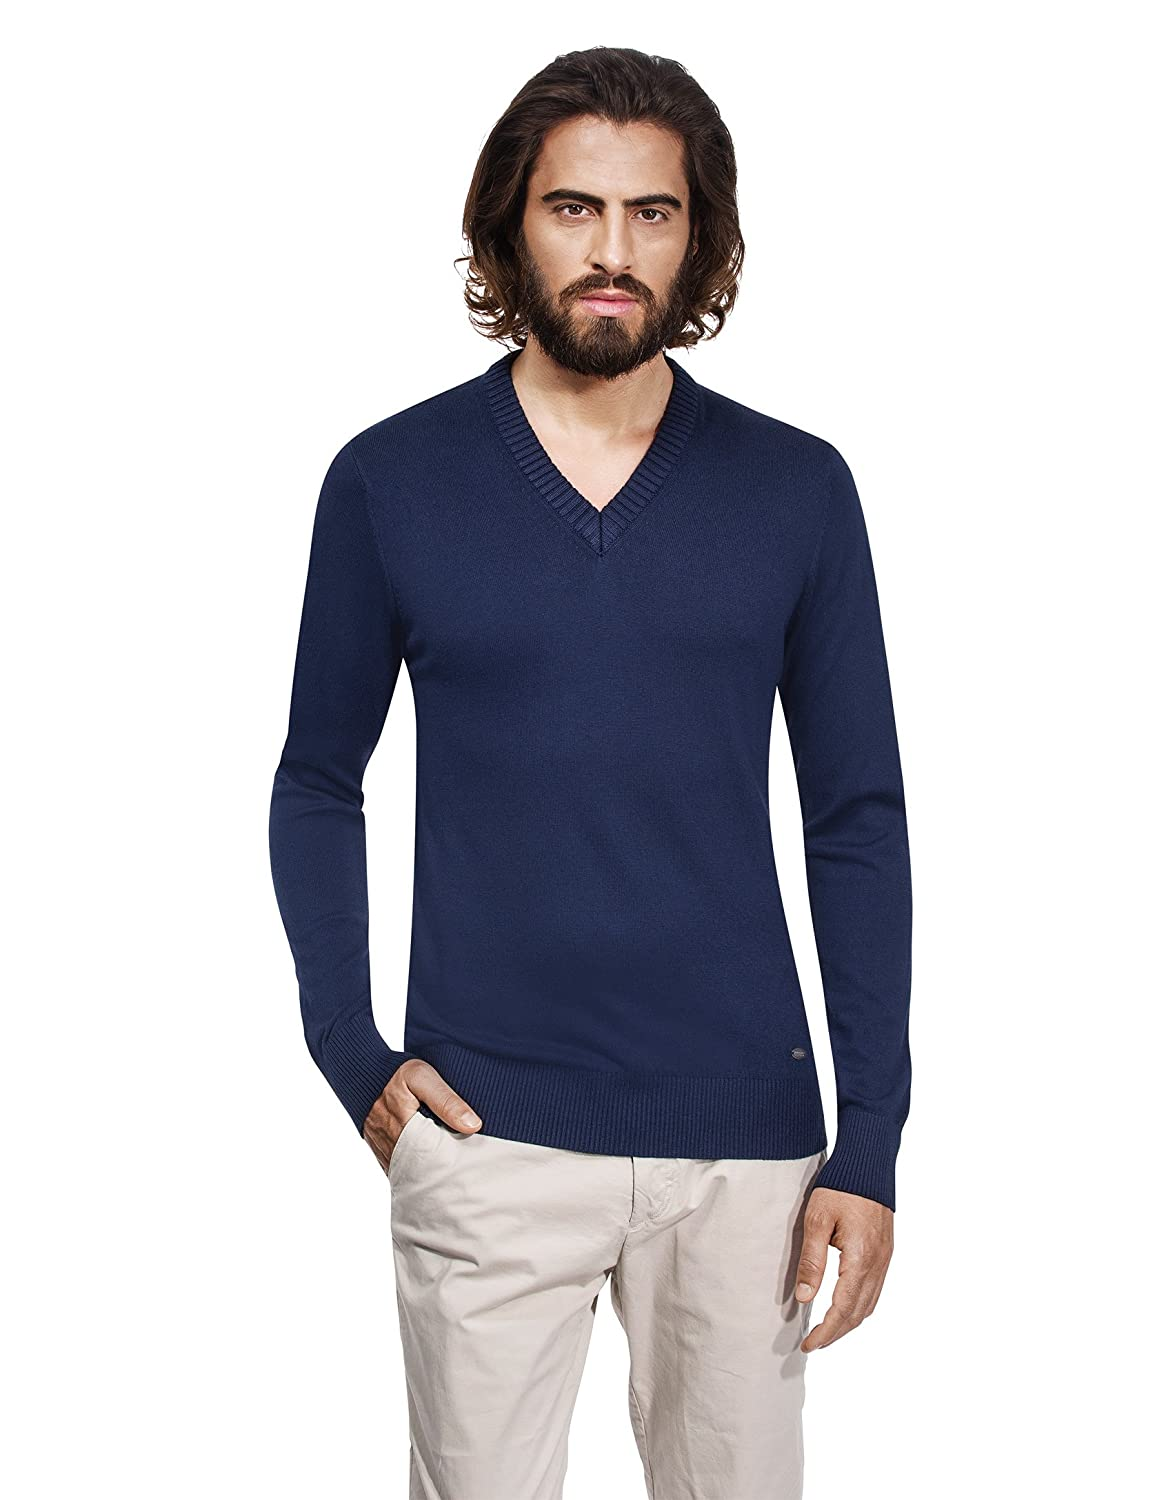 Vincenzo Boretti Mens Pull-Over Knitted Long-Sleeve Jumper Slim-fit Mock-Turtleneck Warm Lightweight Soft Cotton-Blend Plain Colour Elegant for Business Work and Everyday Casual